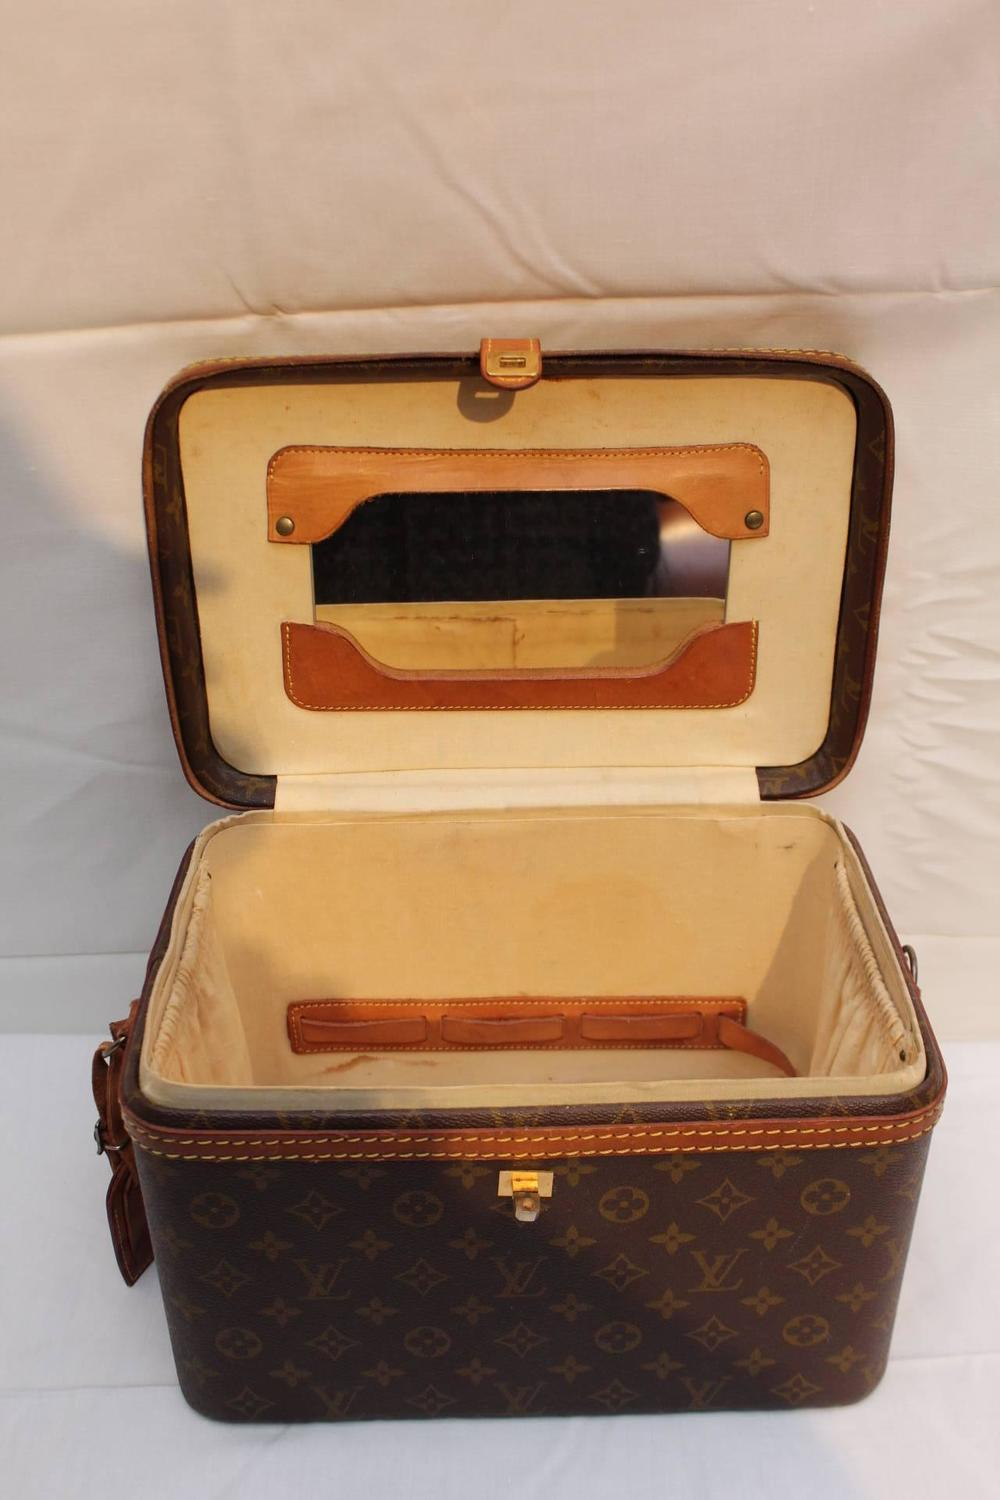 vintage louis vuitton vanity case circa 1980 at 1stdibs. Black Bedroom Furniture Sets. Home Design Ideas